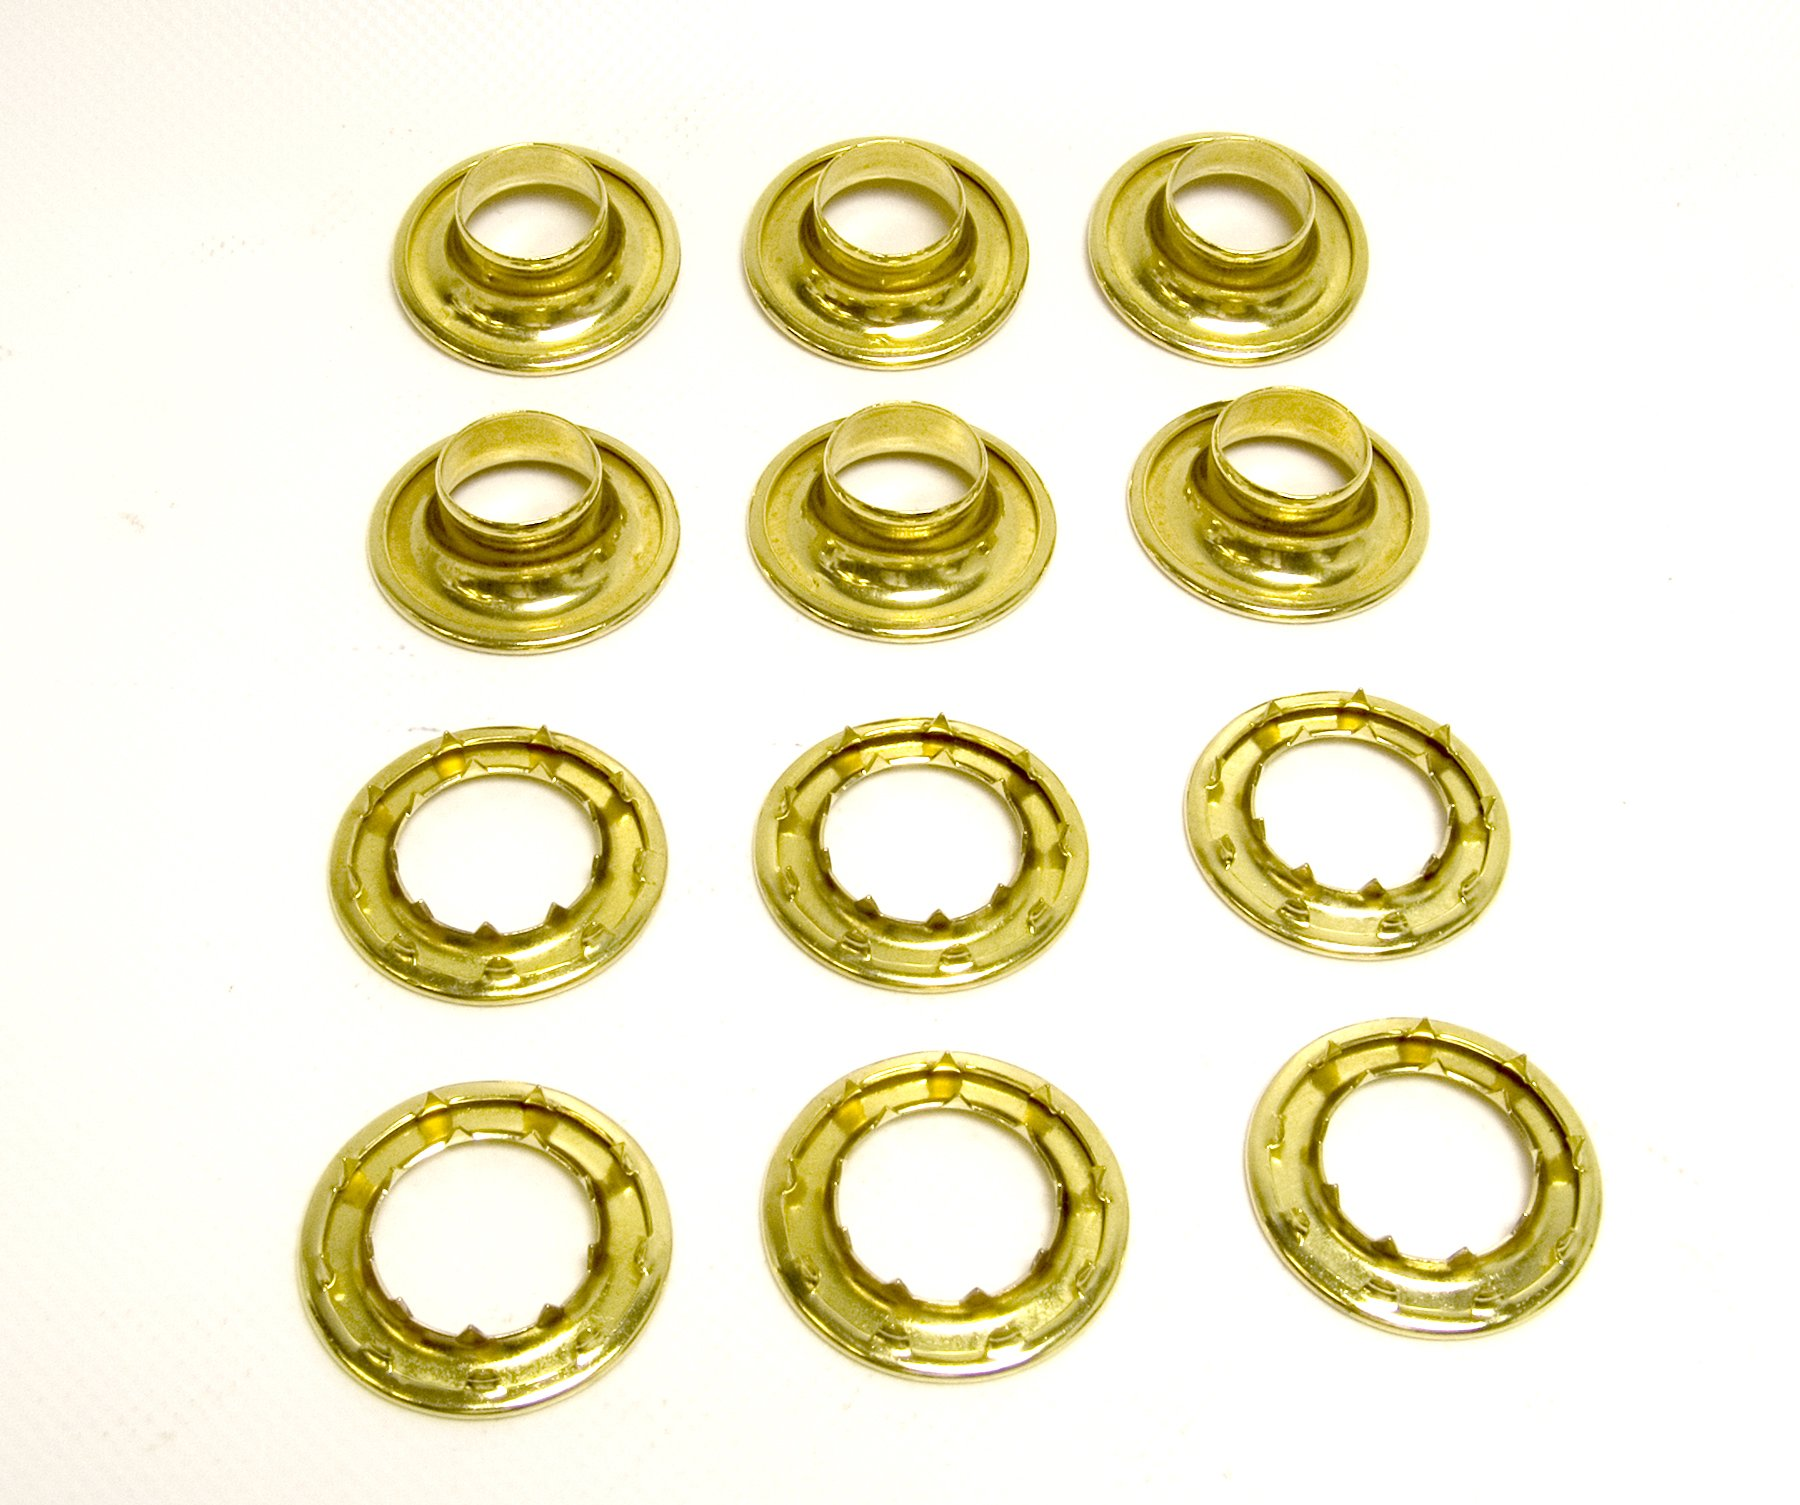 Grommets, #6 Brass, Heavy Duty Rolled Rim Spur, 3/4'' Inch Hole, 6 Pc. Set by C.S. Osborne